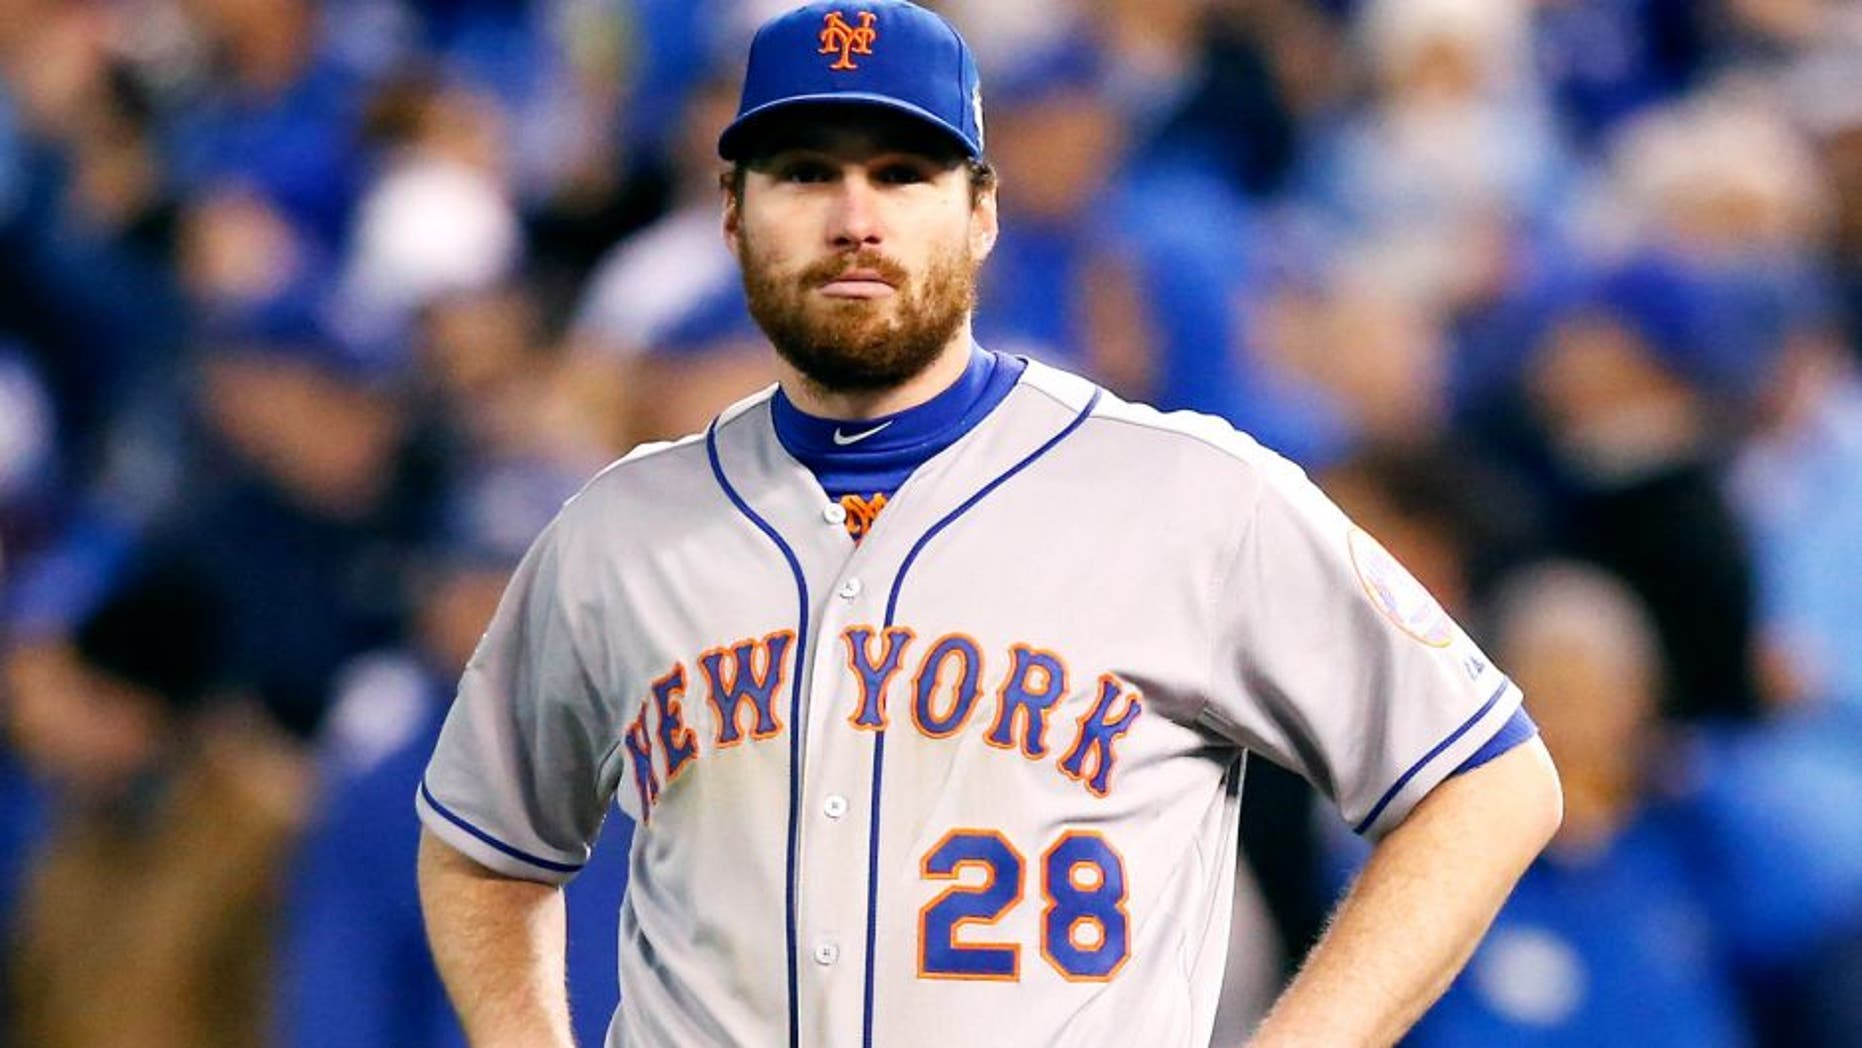 KANSAS CITY, MO - OCTOBER 28: Daniel Murphy #28 of the New York Mets reacts in the eighth inning against the Kansas City Royals in Game Two of the 2015 World Series at Kauffman Stadium on October 28, 2015 in Kansas City, Missouri. (Photo by Christian Petersen/Getty Images)